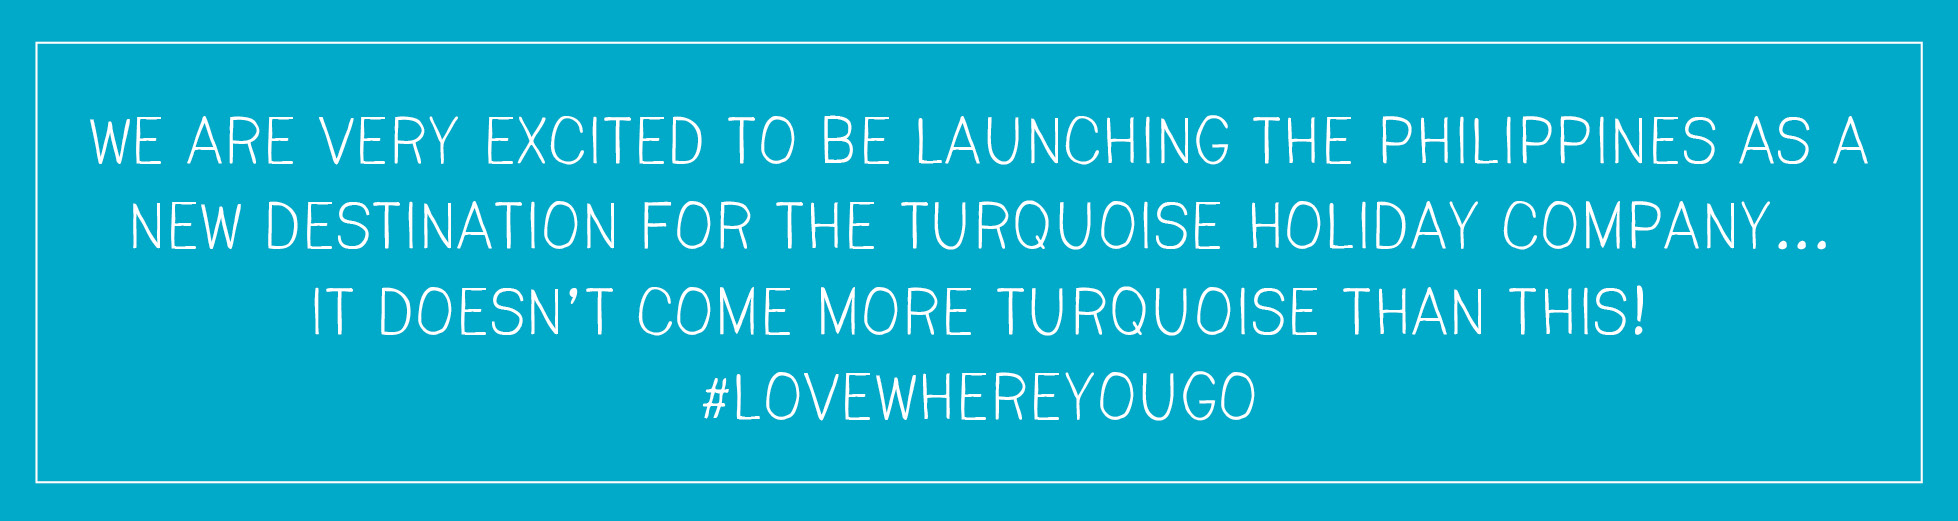 The Turquoise Holiday Company launches the Philippines as new holiday destination